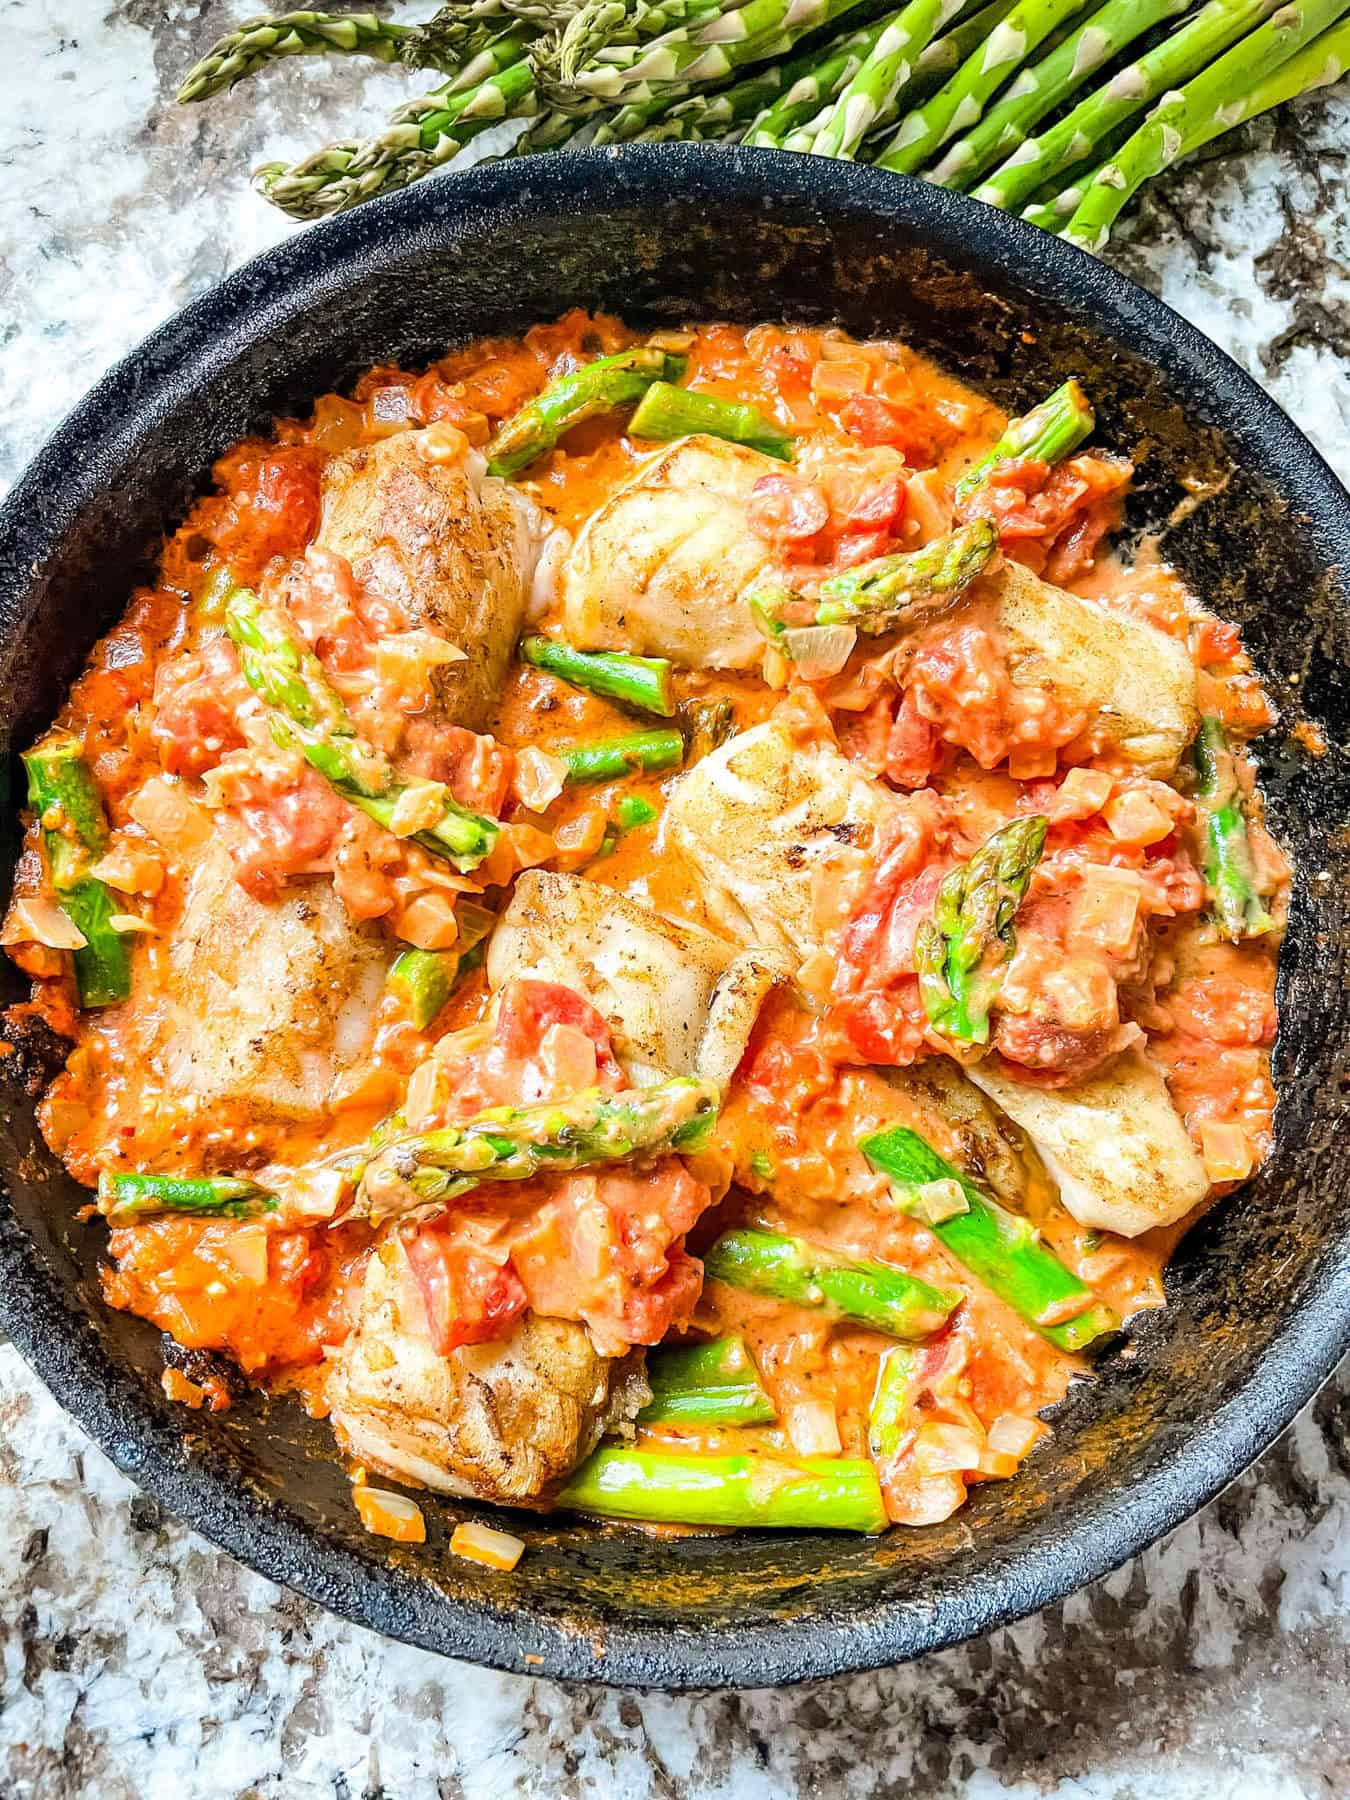 The fish cooked in the sauce in a skillet